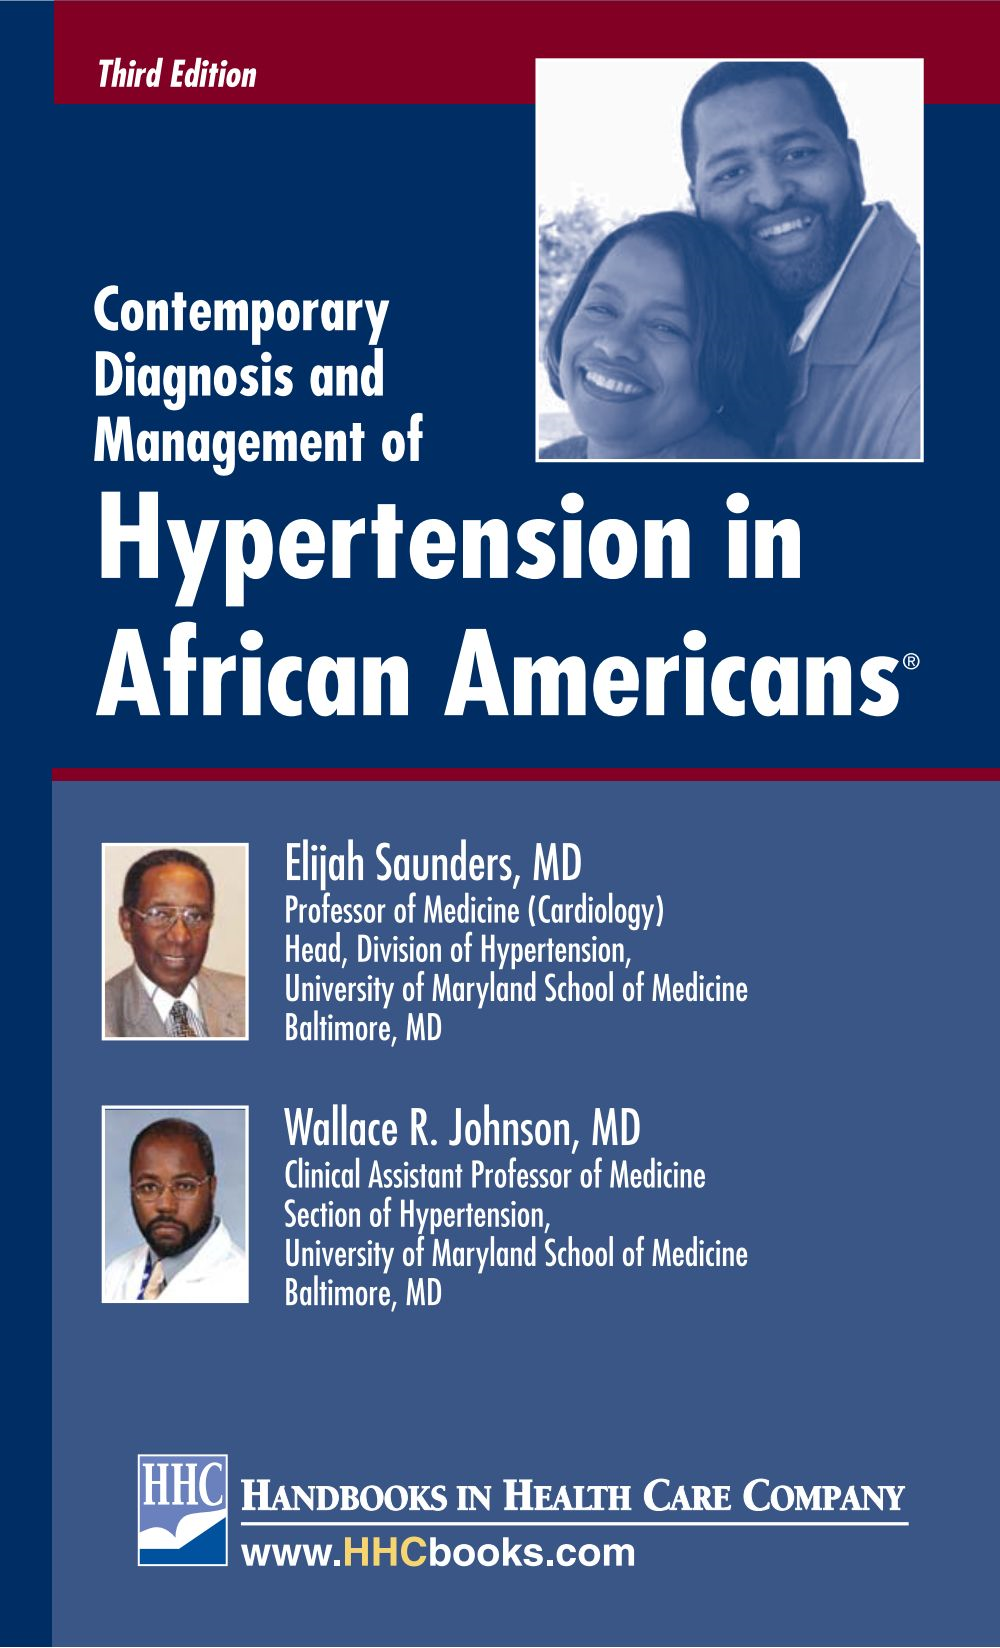 Contemporary Diagnosis and Management of Hypertension in African Americans®